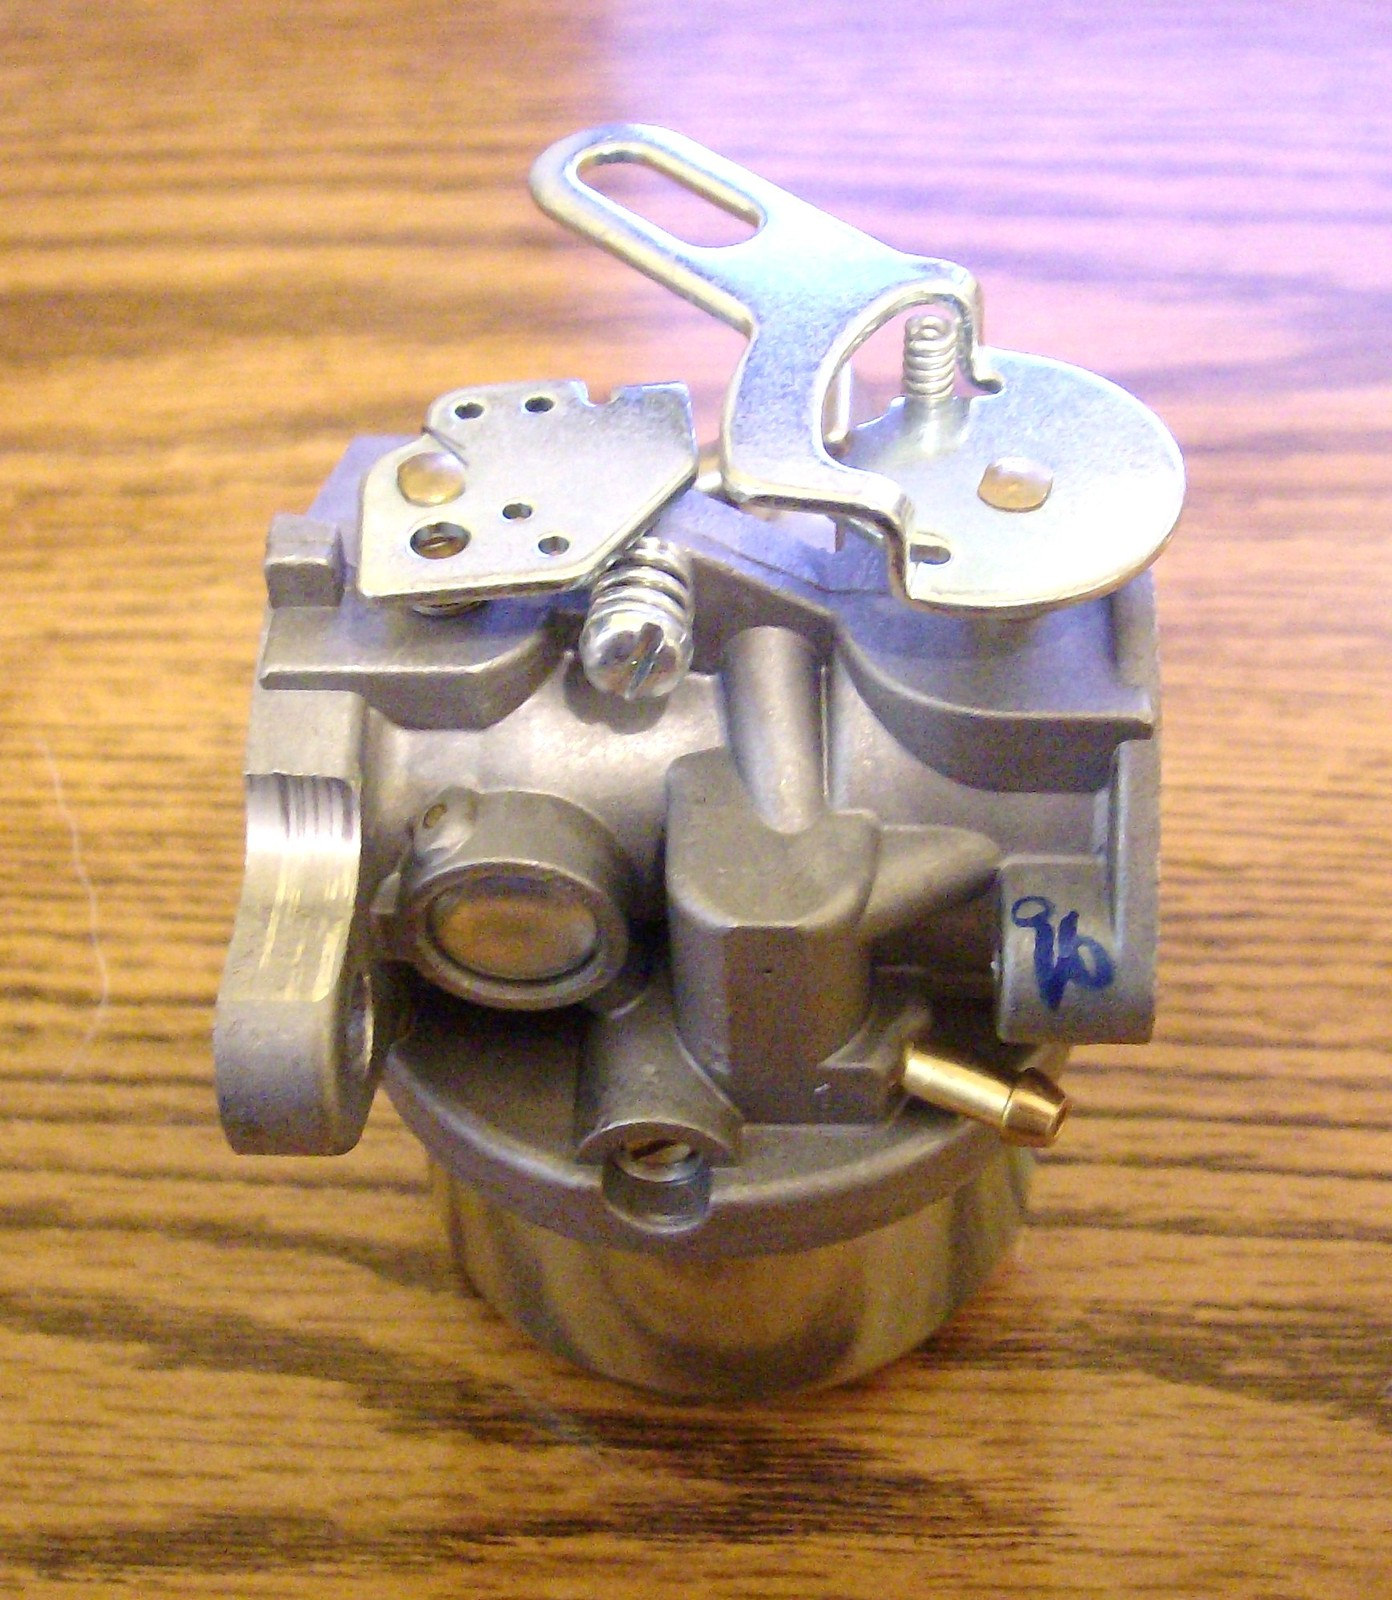 Snowblower carburetor for Tecumseh HSK40, HSK50, HSSK40, HSSK50, HS50, 640084B